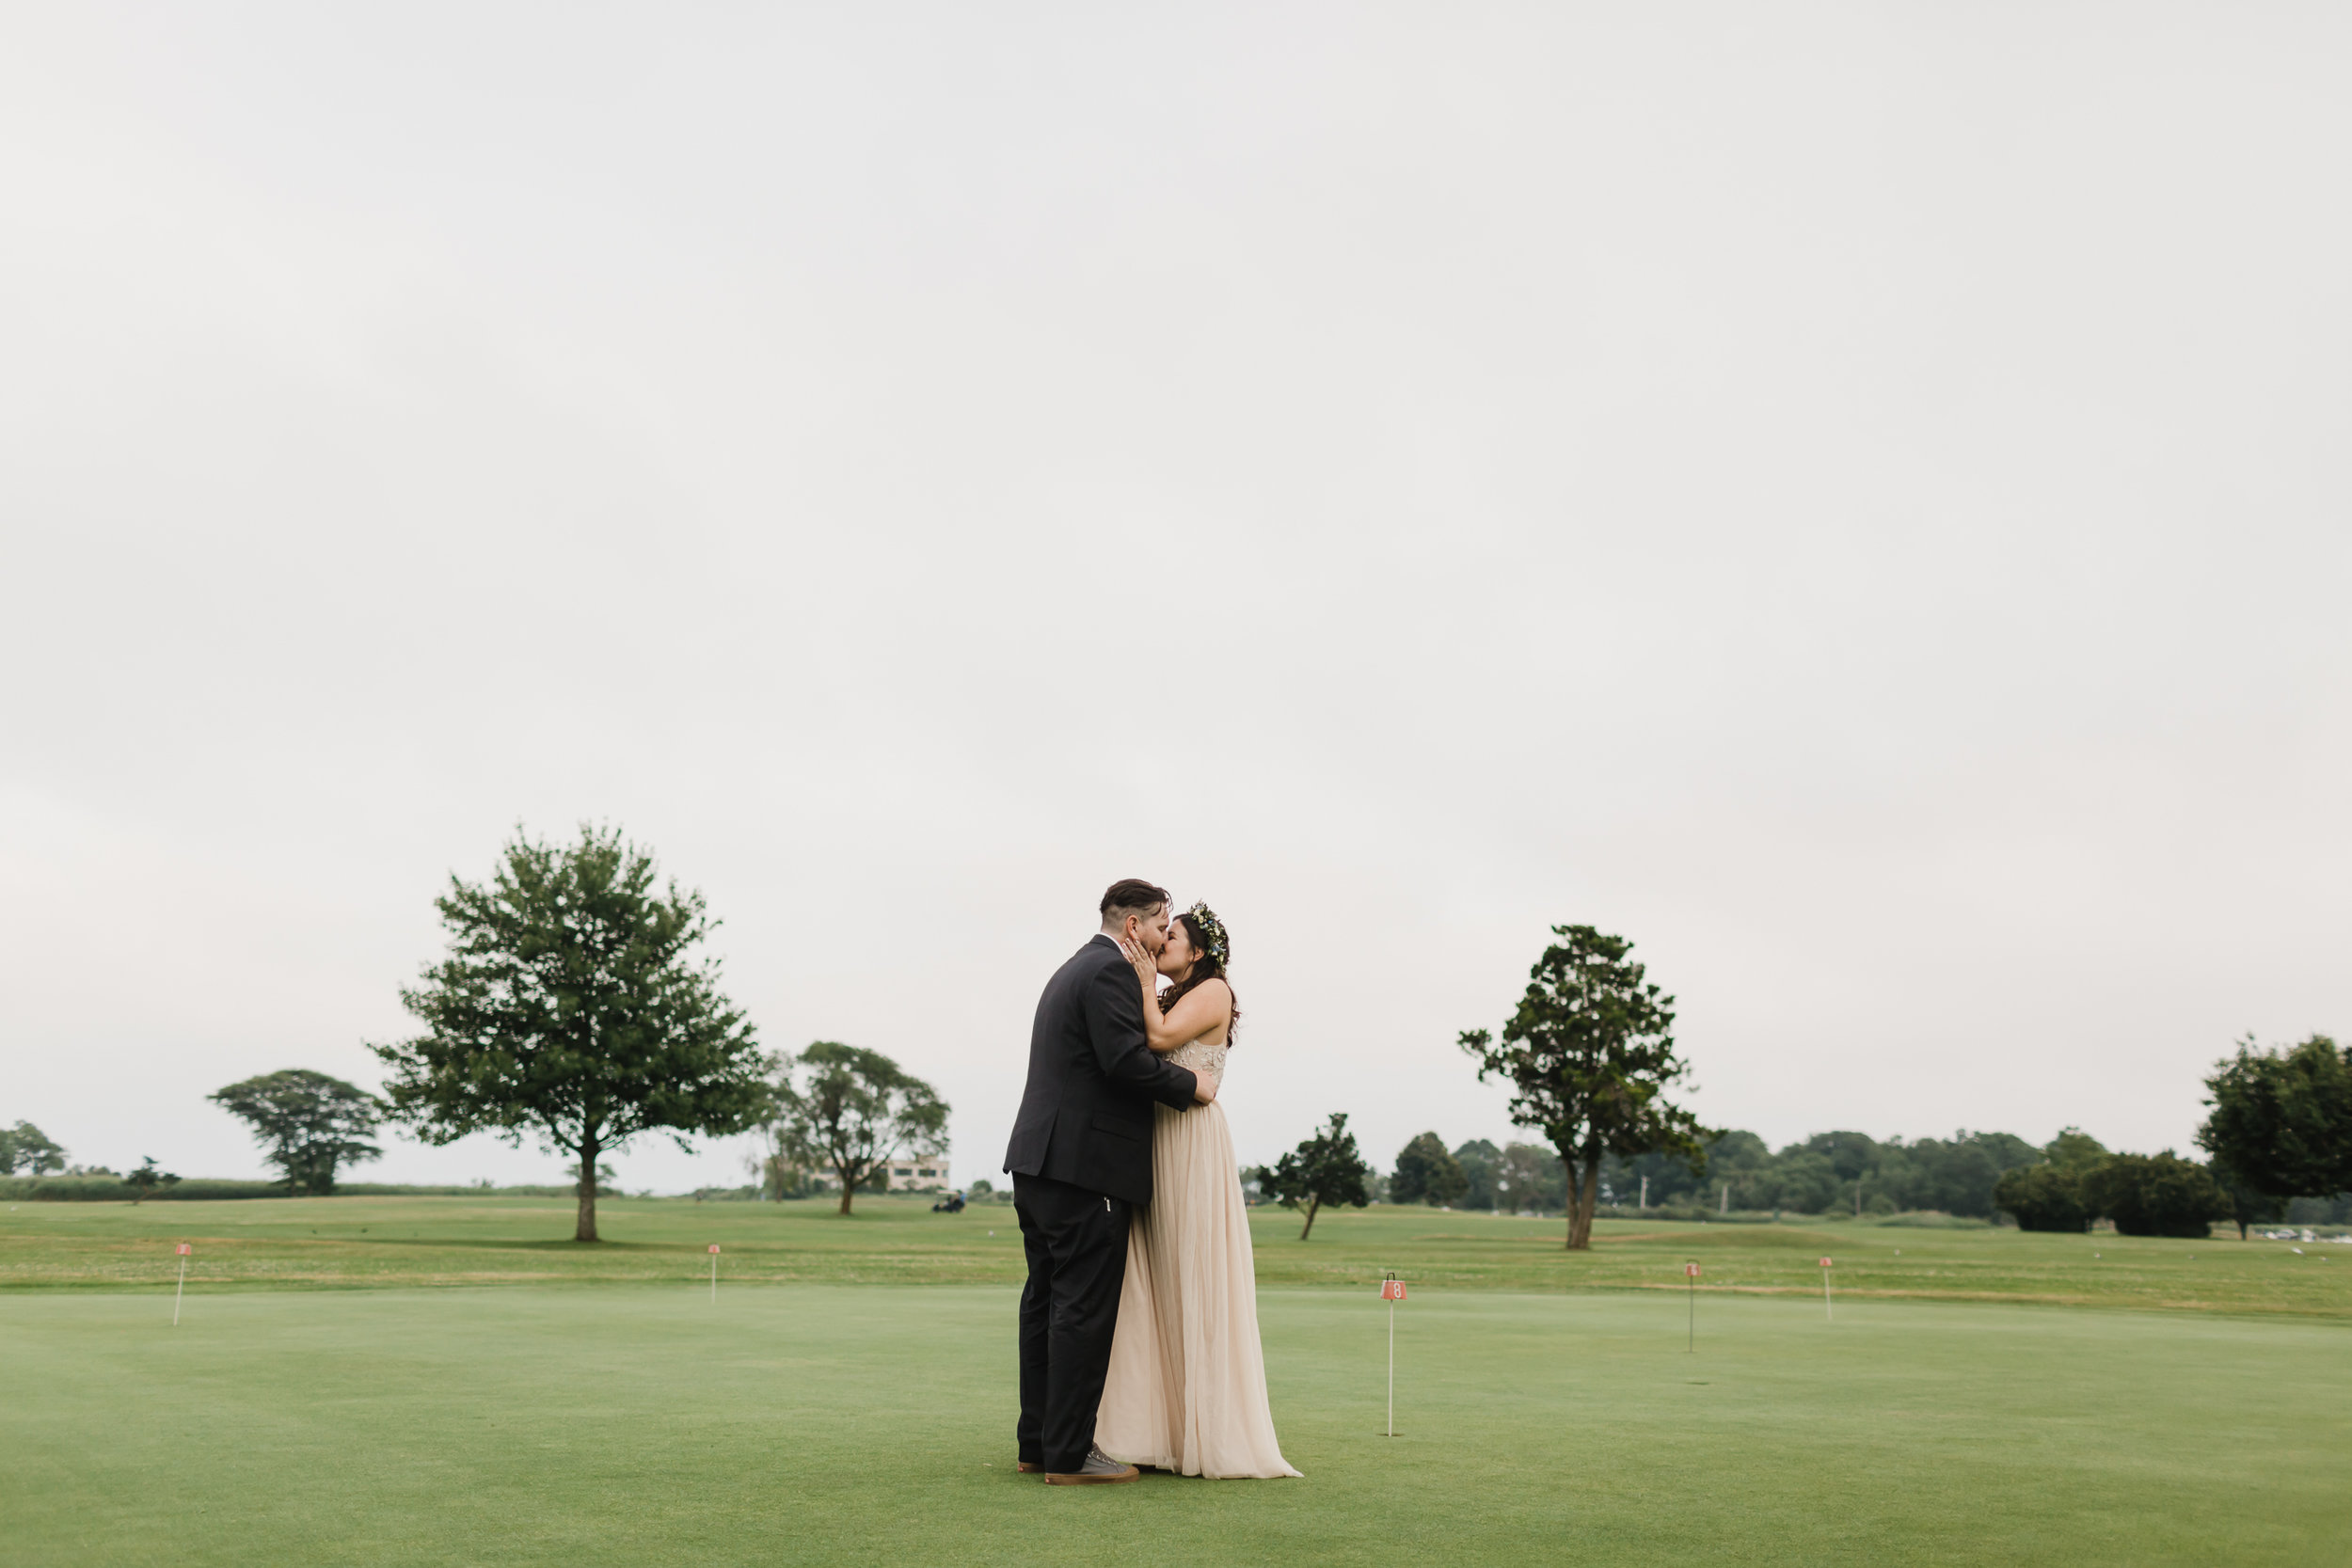 Gianna Keiko Atlanta NYC California Wedding Photographer_Sneak Peek-57.jpg